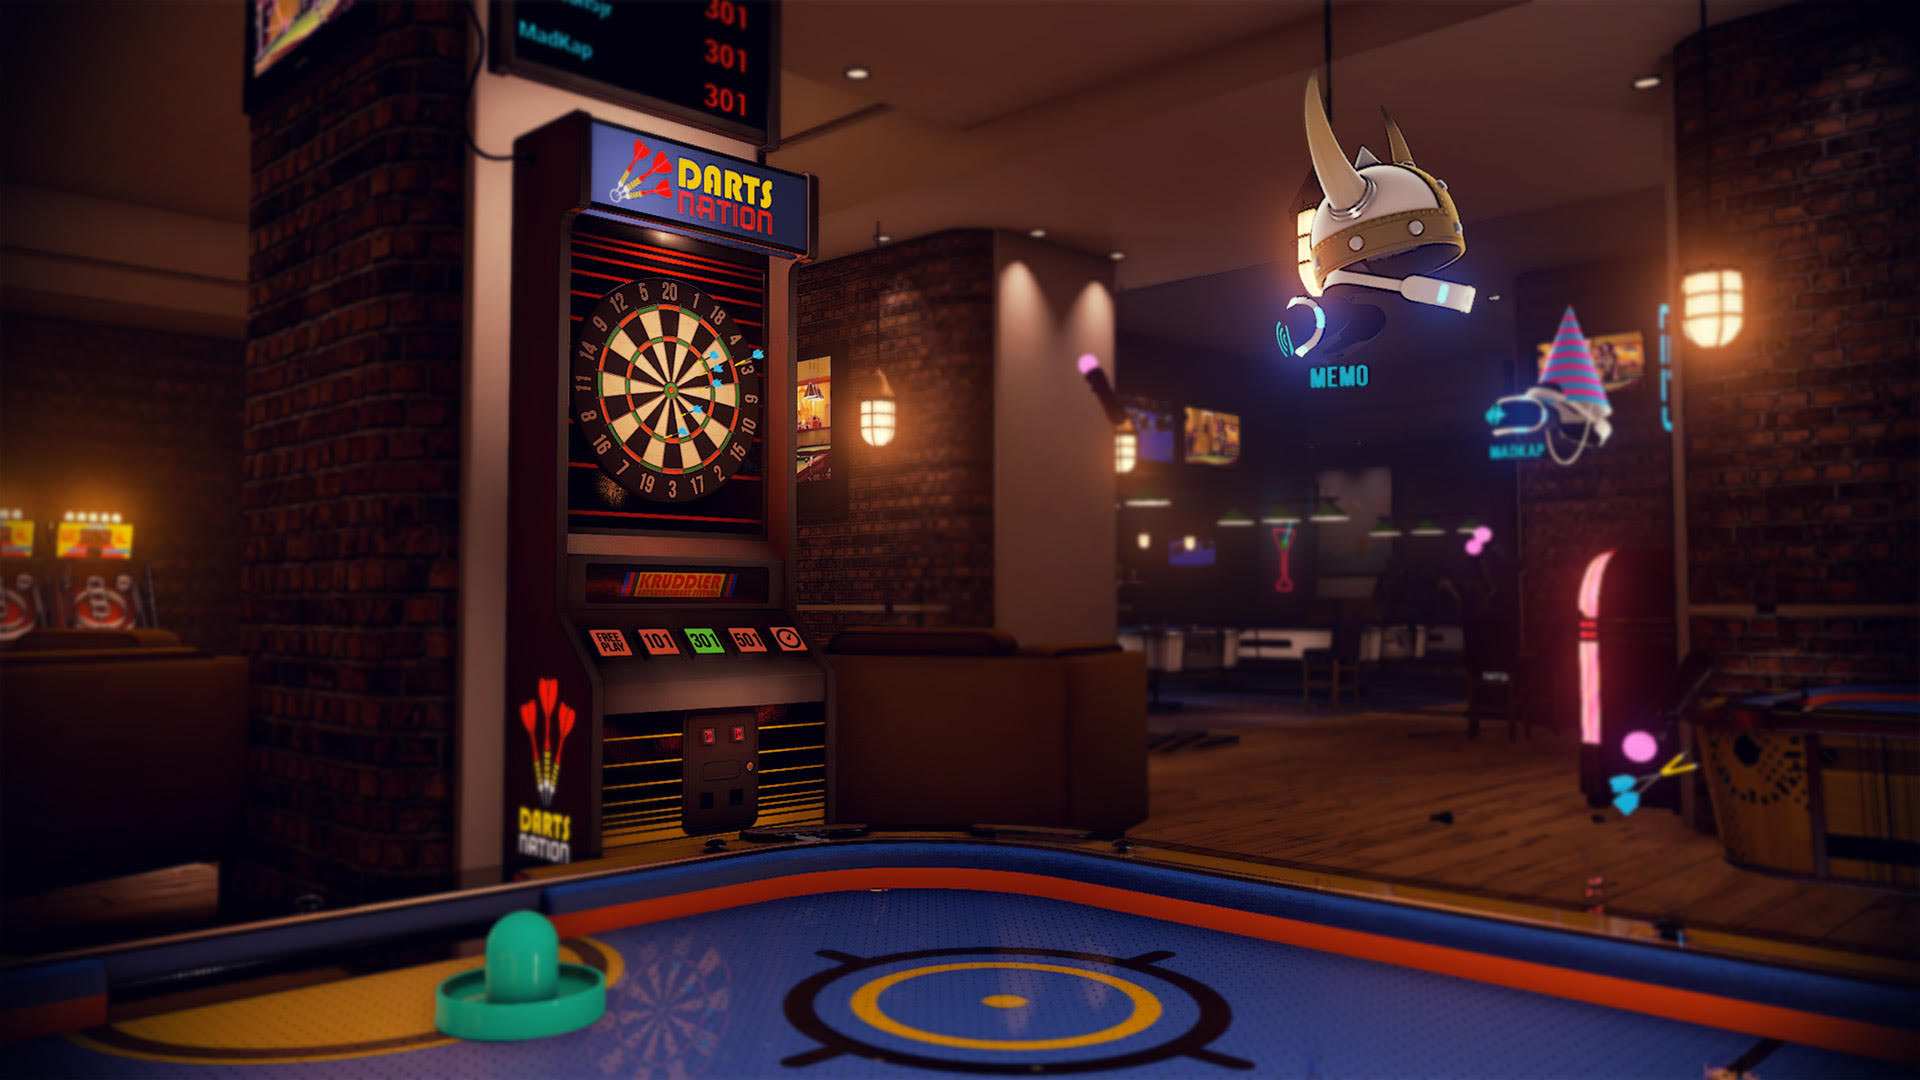 Sports Bar un jeu à l'univers social sur Playstation VR